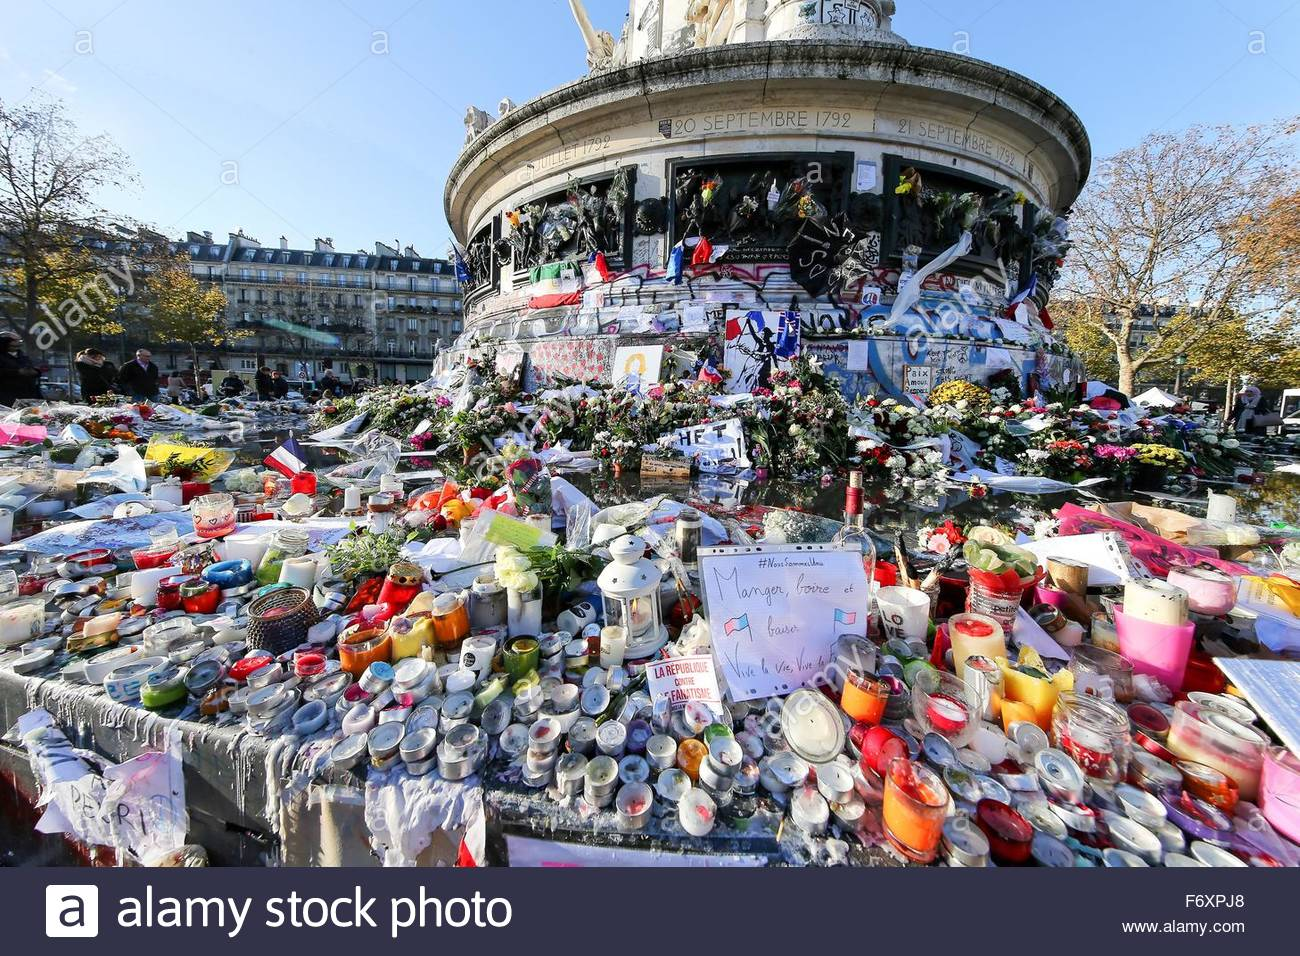 Paris, France. novembre 21st, 2015. FRANCE, Paris: Flowers, candles and messages are seen at a makeshift memorial - Stock Image